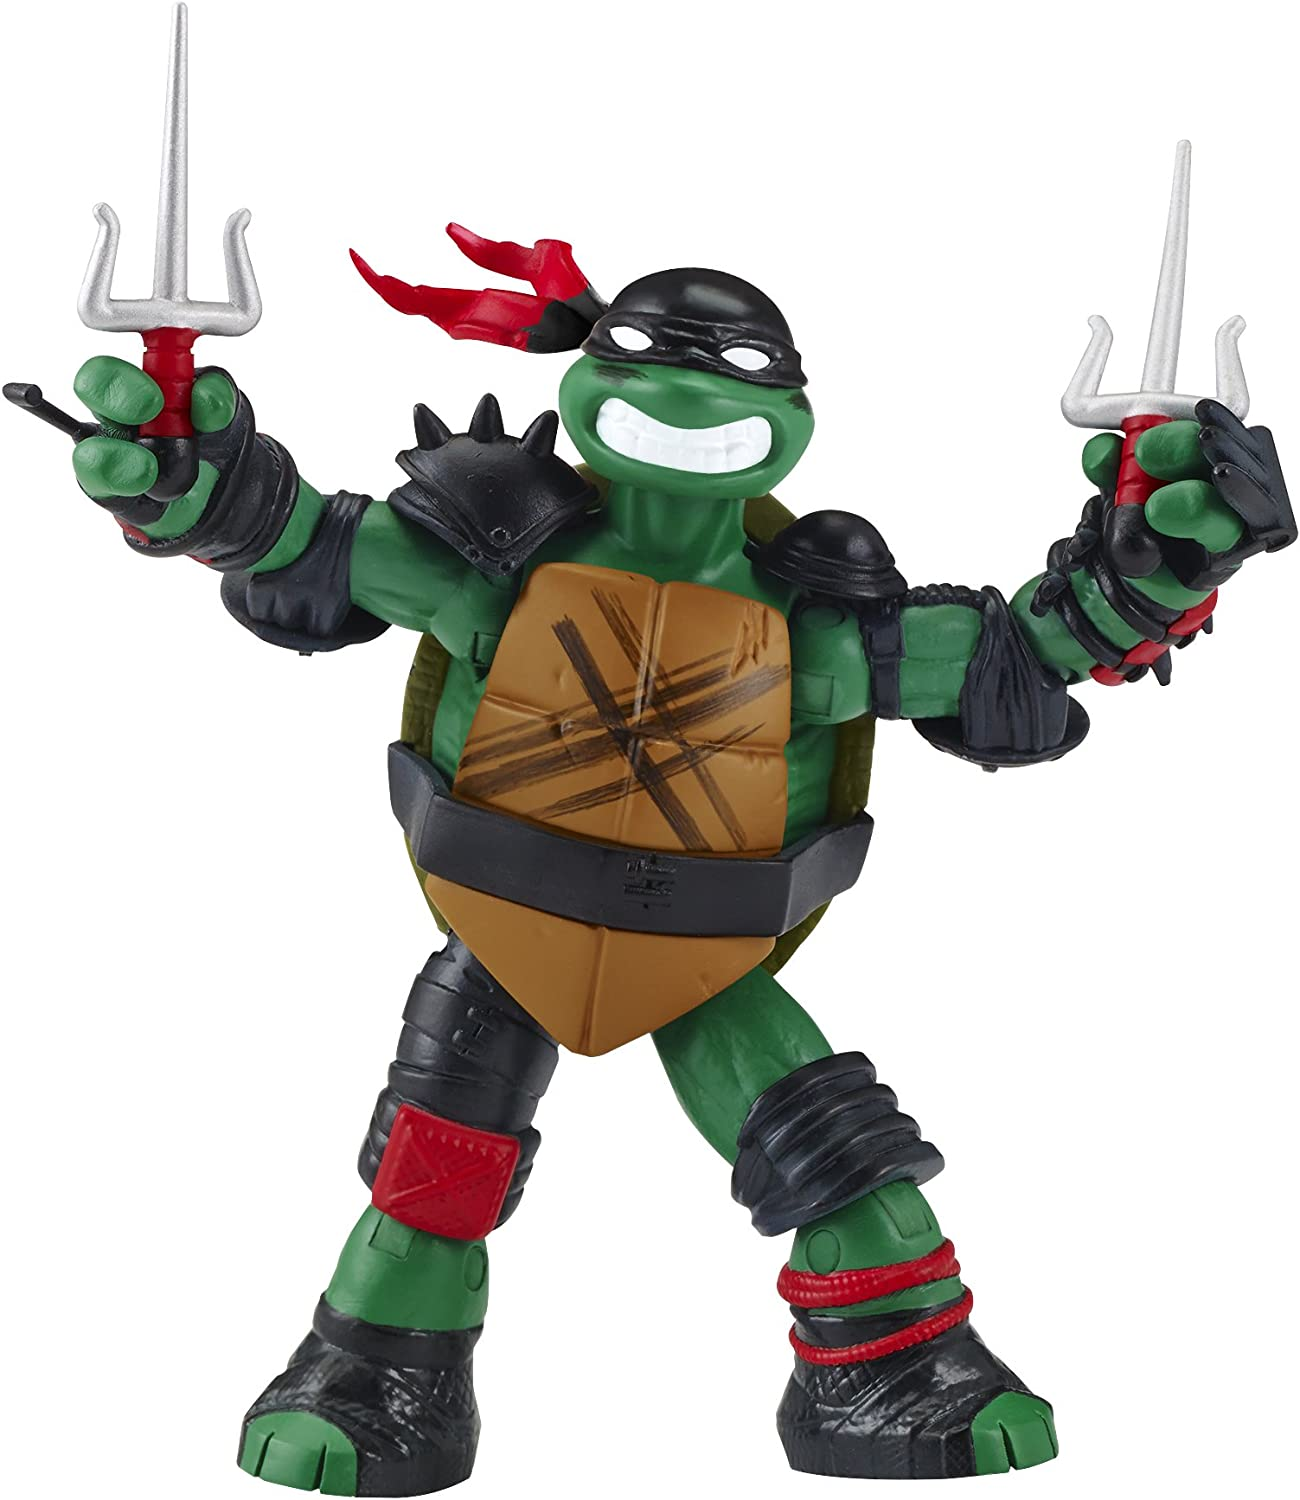 Teenage Mutant Ninja Turtles Super Ninja Raphael Action Figure